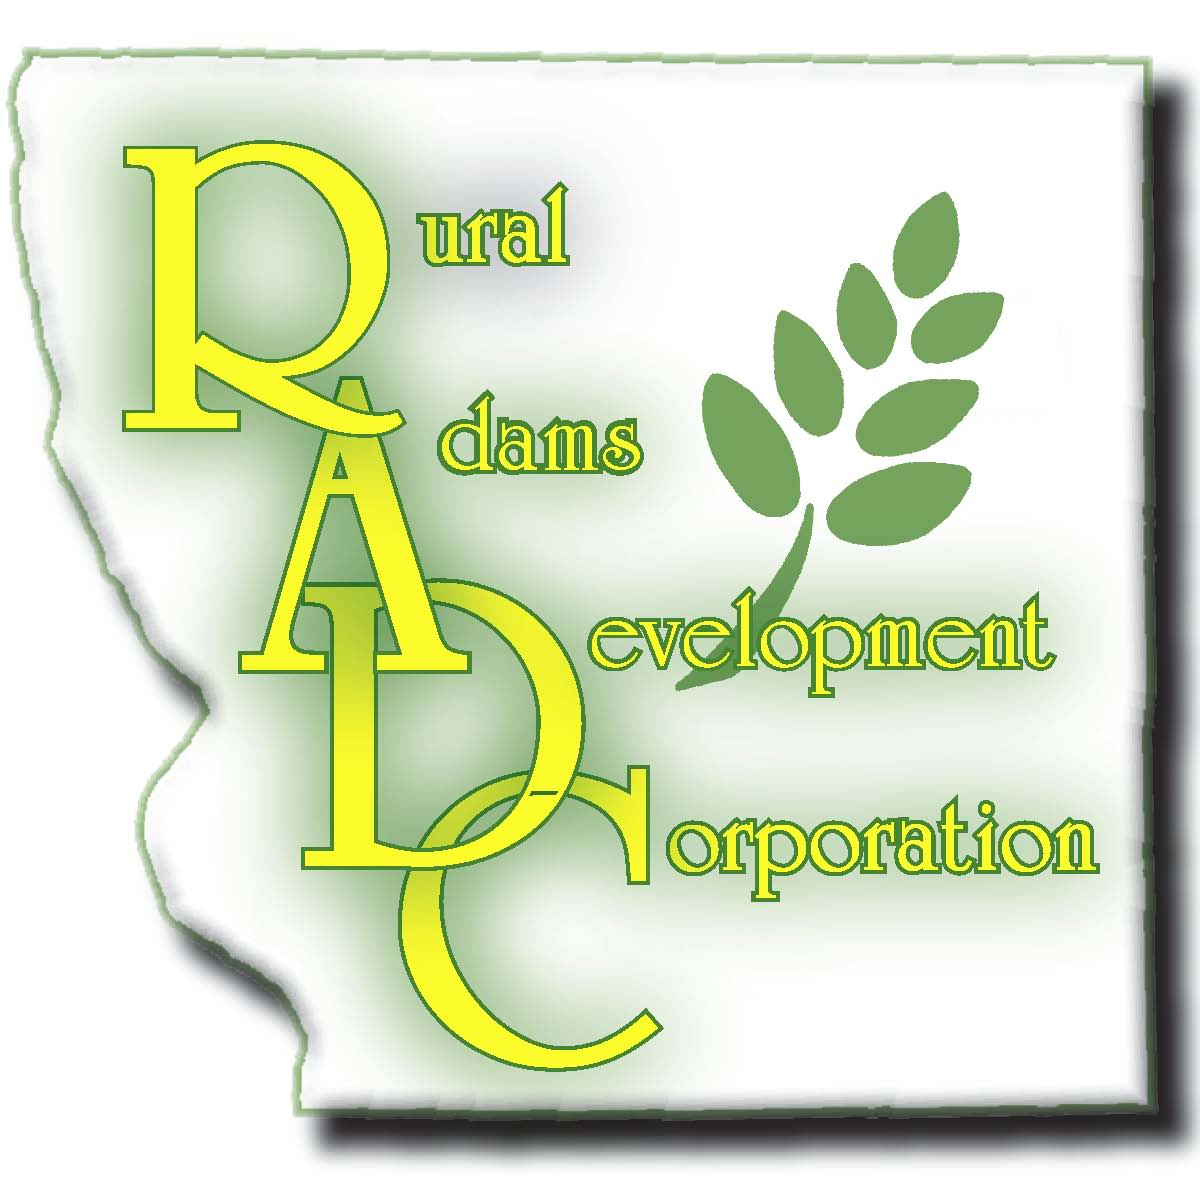 Rural Adams Development Corporation Celebrates 25 Years at Annual Meeting